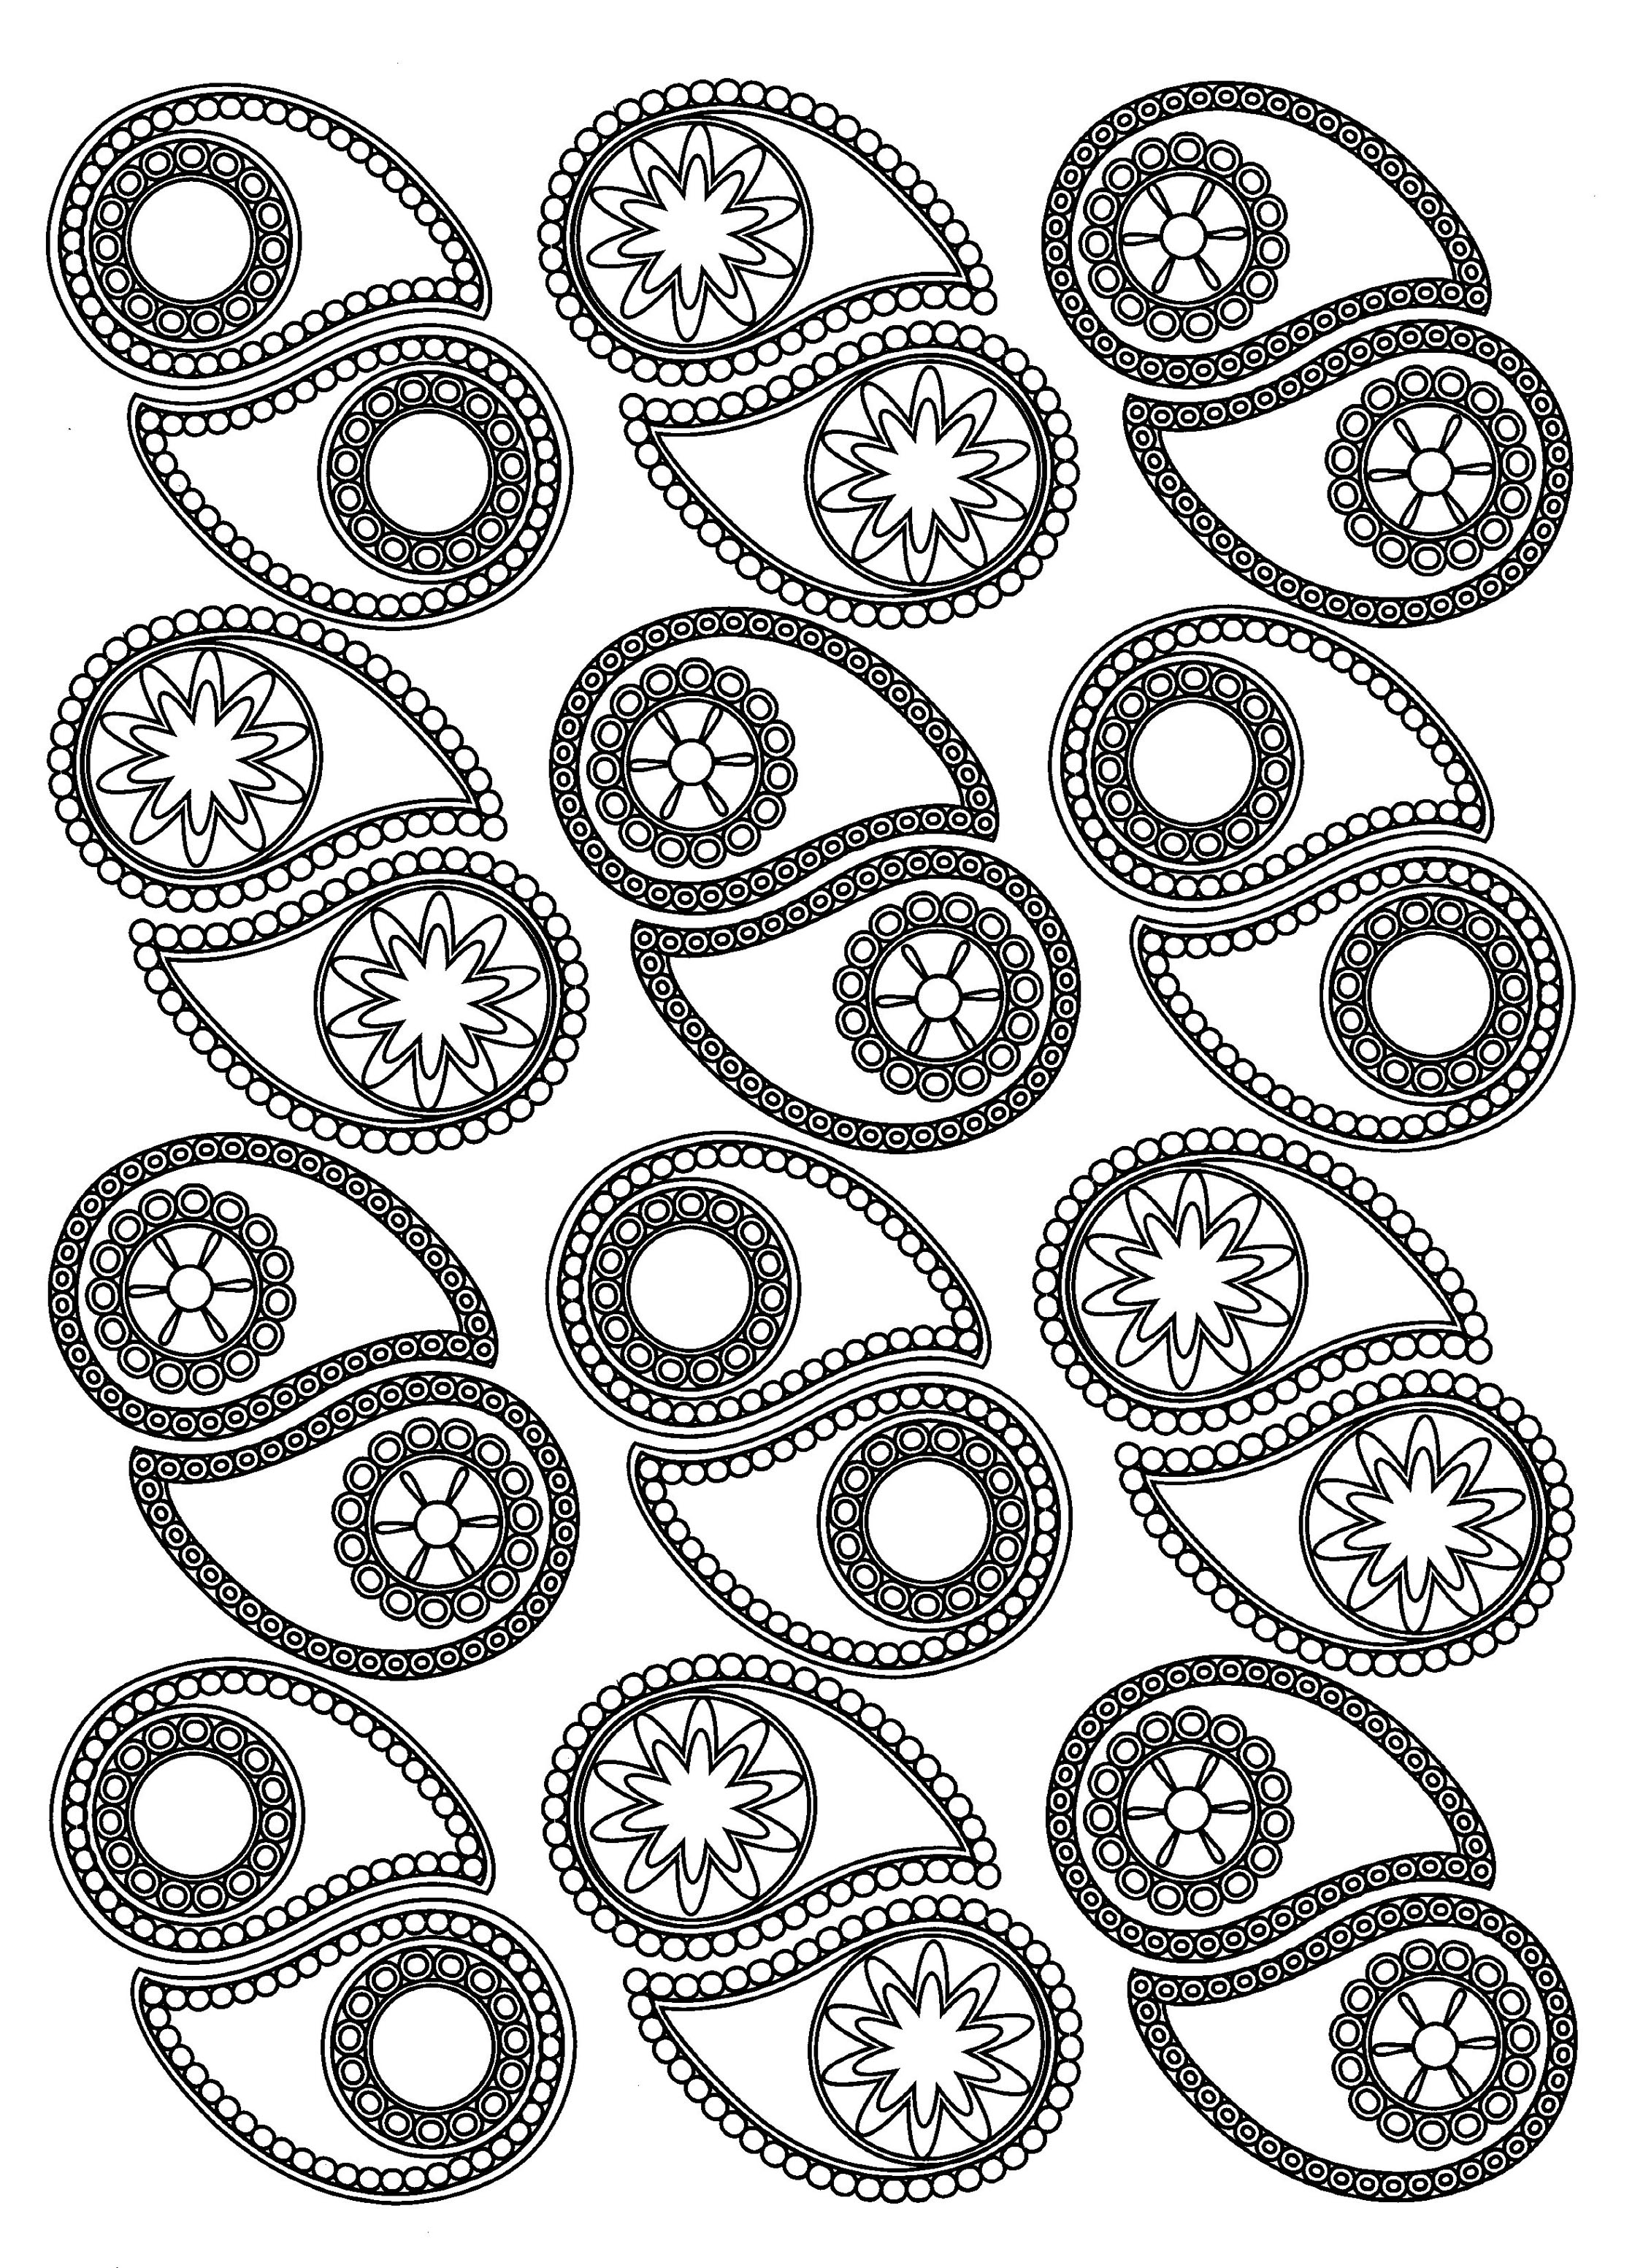 Various Paisley patterns